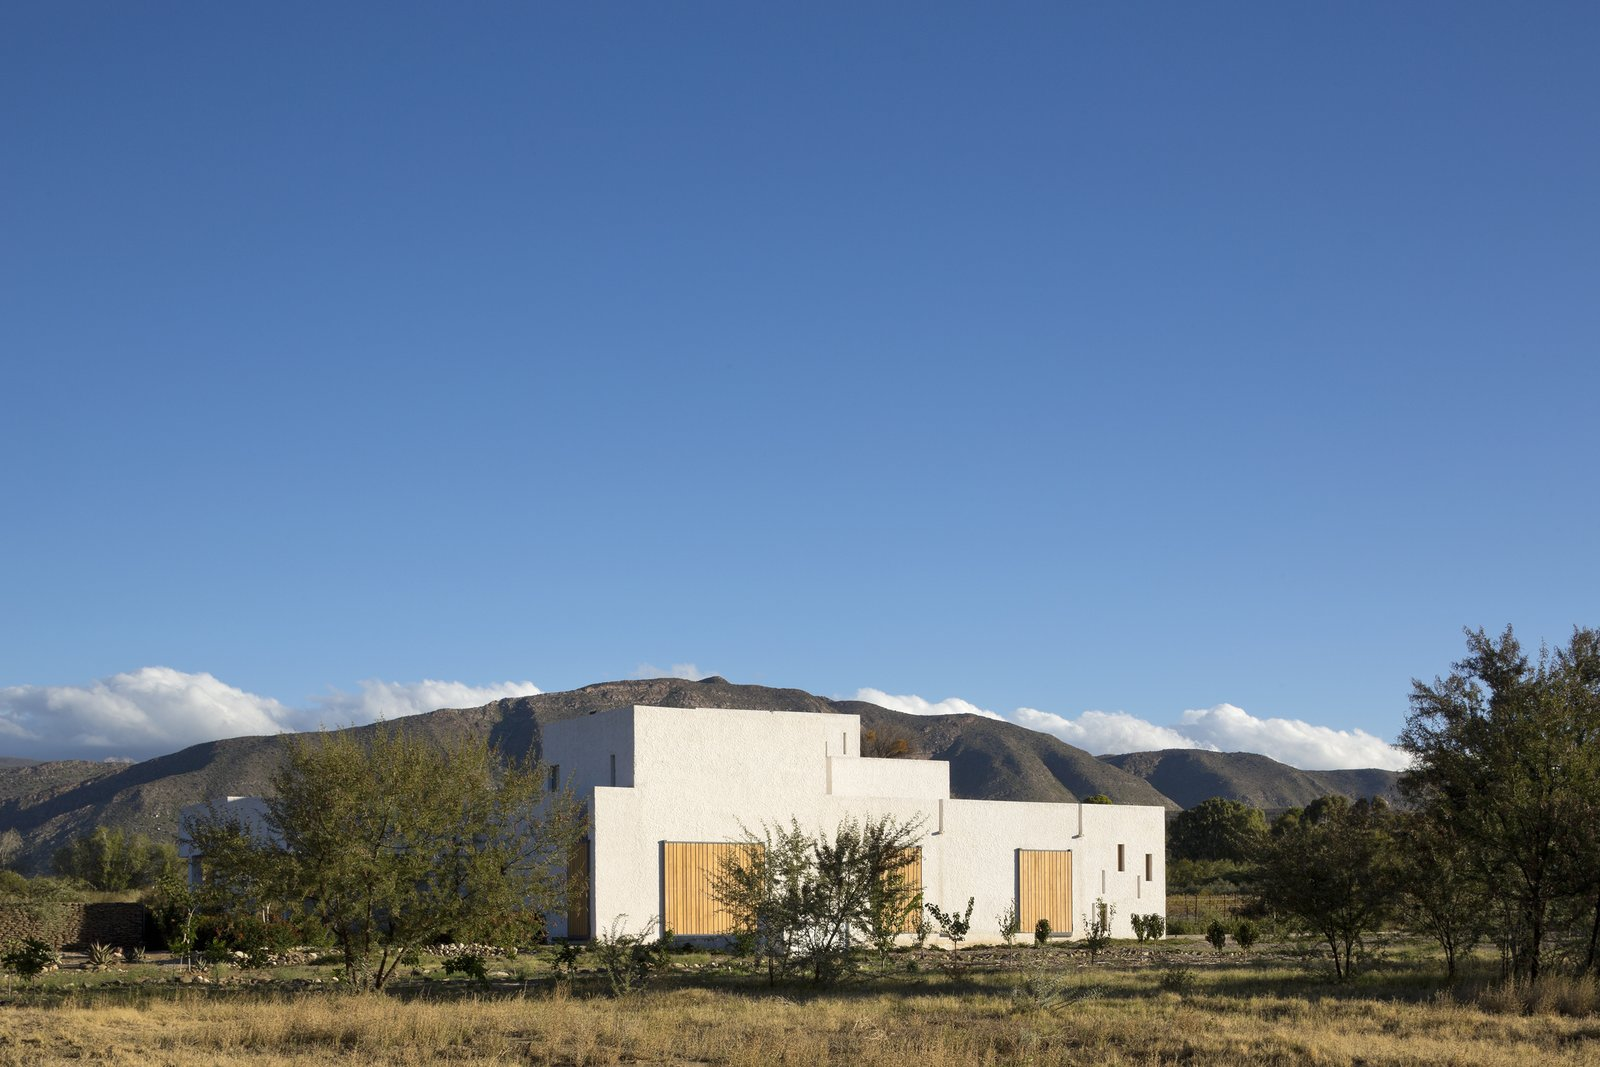 London-based firm Openstudio Architects designed a retreat on the outskirts of Prince Albert, a town that sits near a pass of the Swartberg mountain range in South Africa.